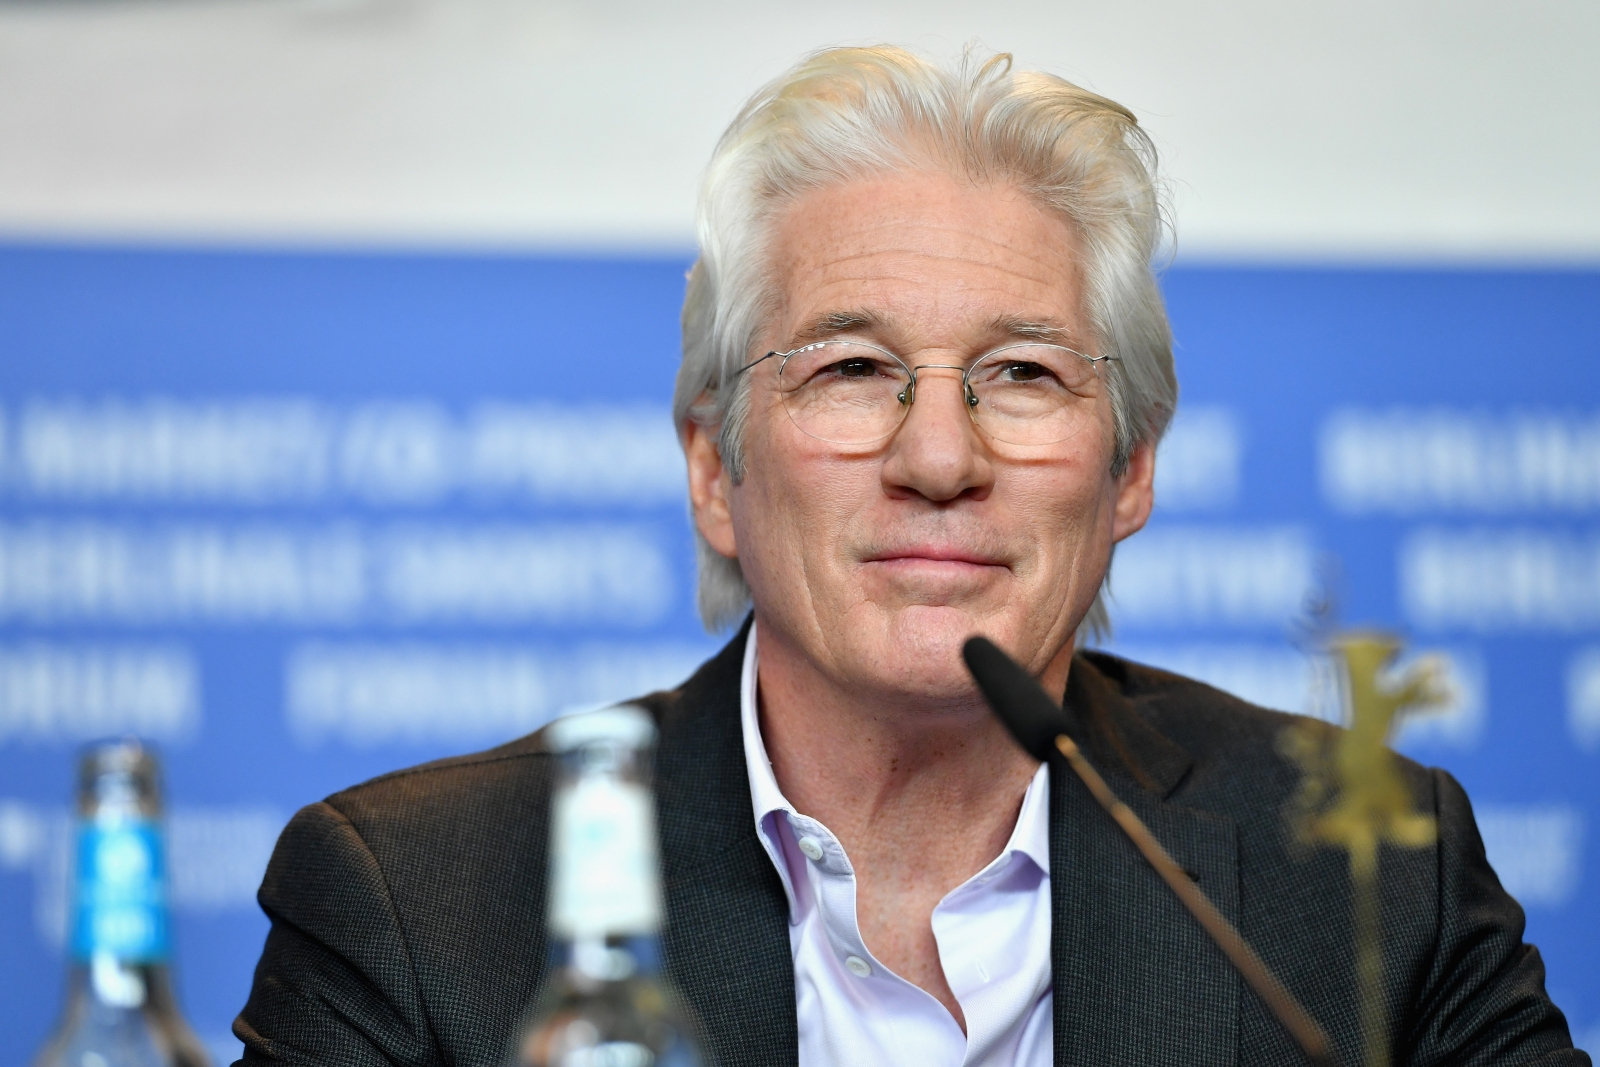 richard gere - photo #7